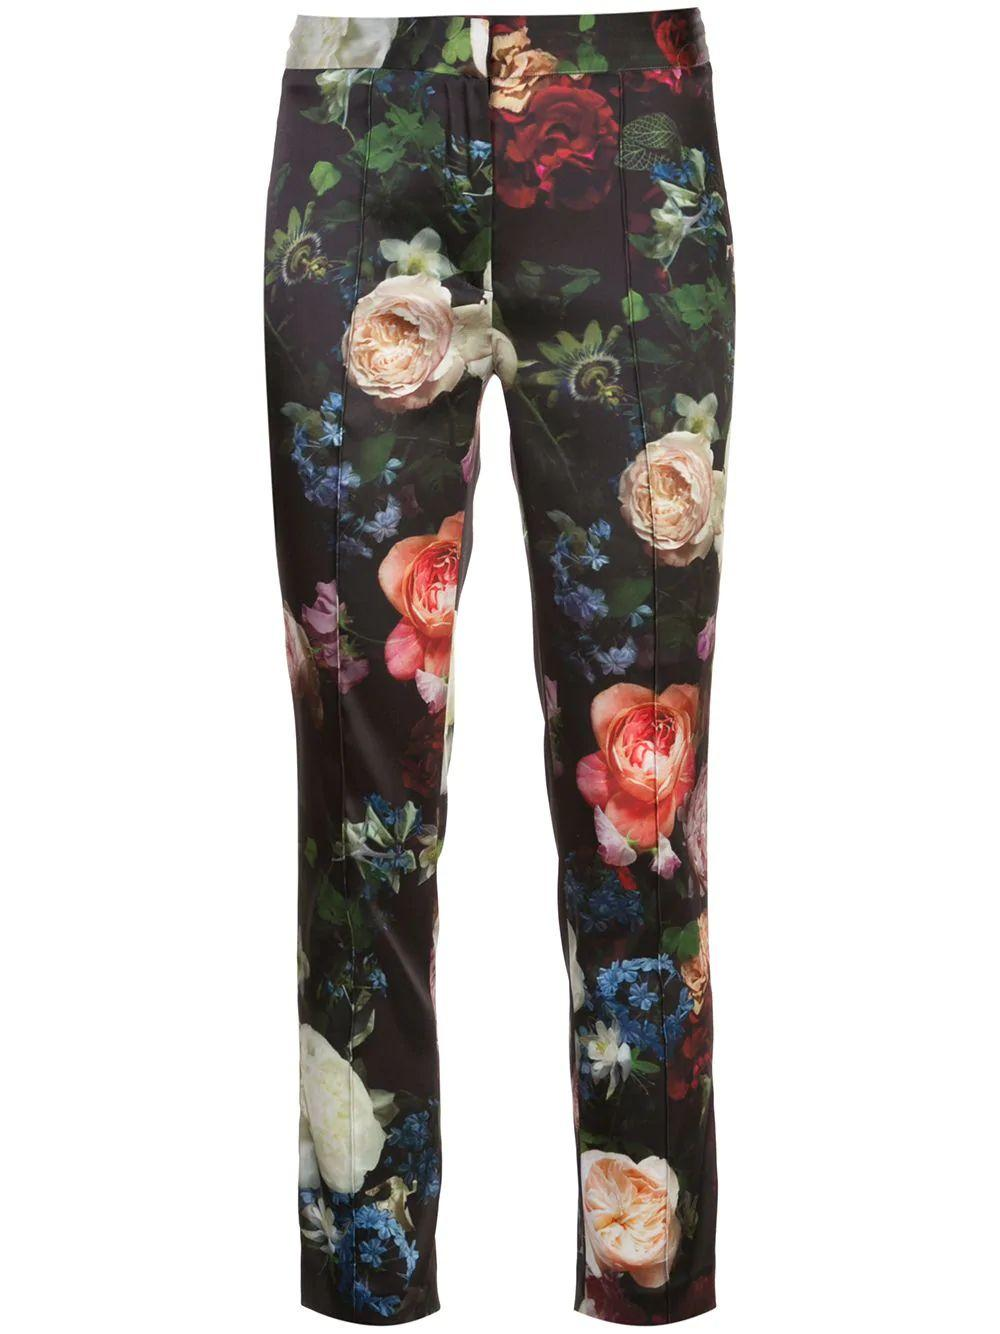 Stretch Satin Floral Print Cigarette Pant